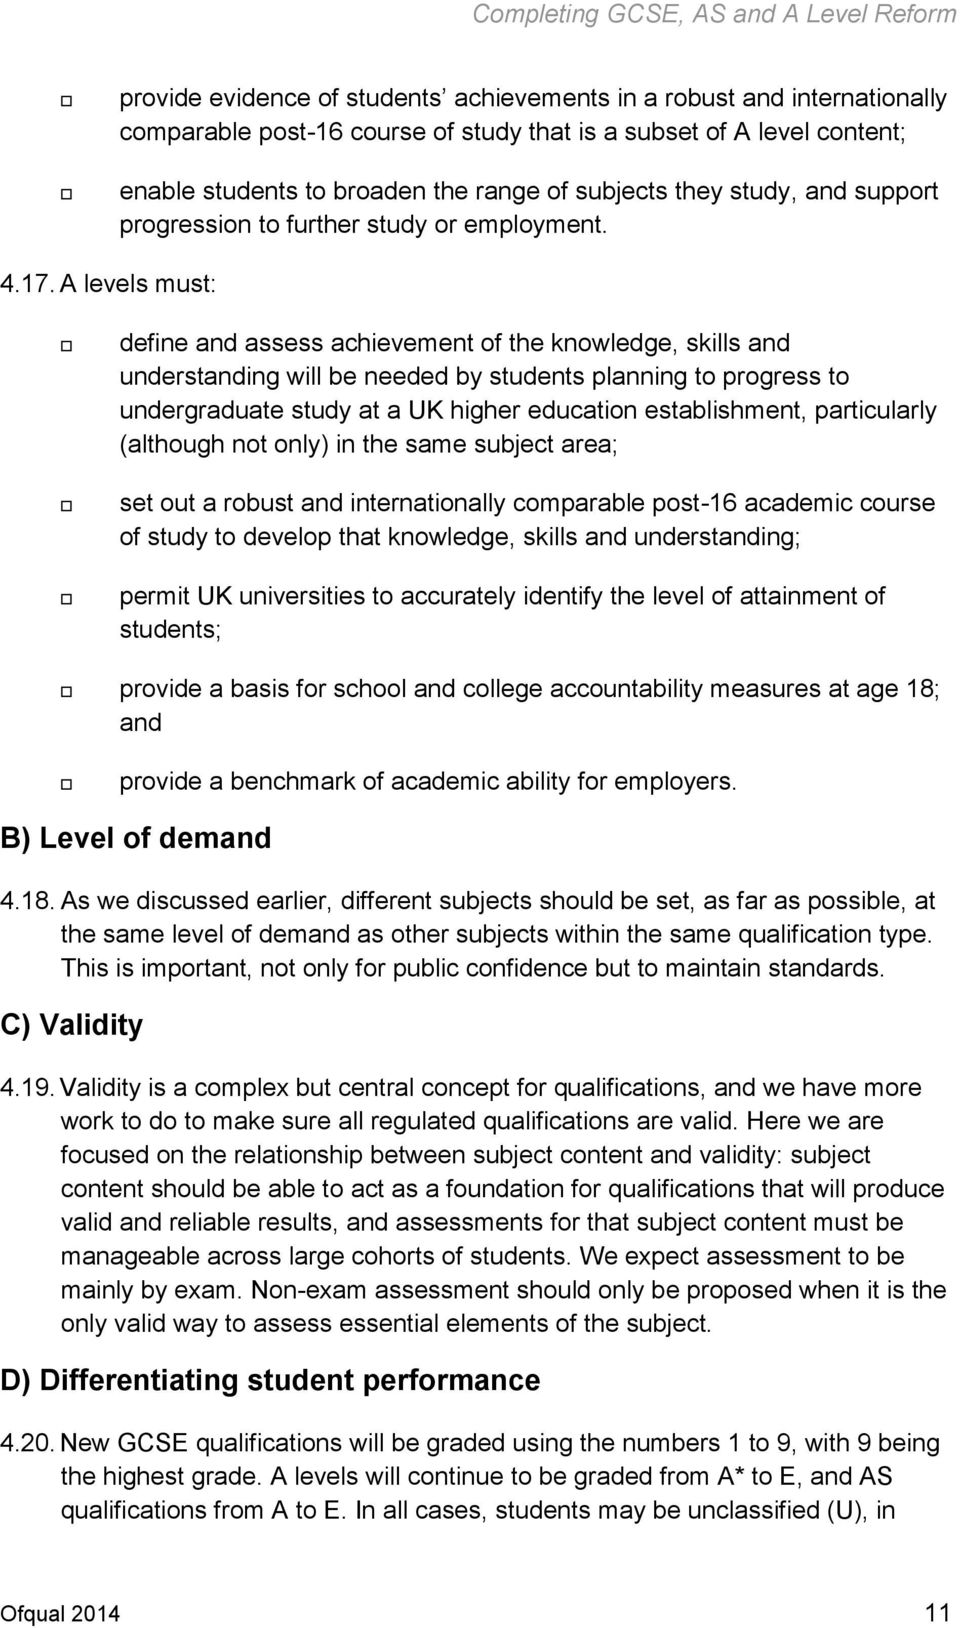 A levels must: define and assess achievement of the knowledge, skills and understanding will be needed by students planning to progress to undergraduate study at a UK higher education establishment,